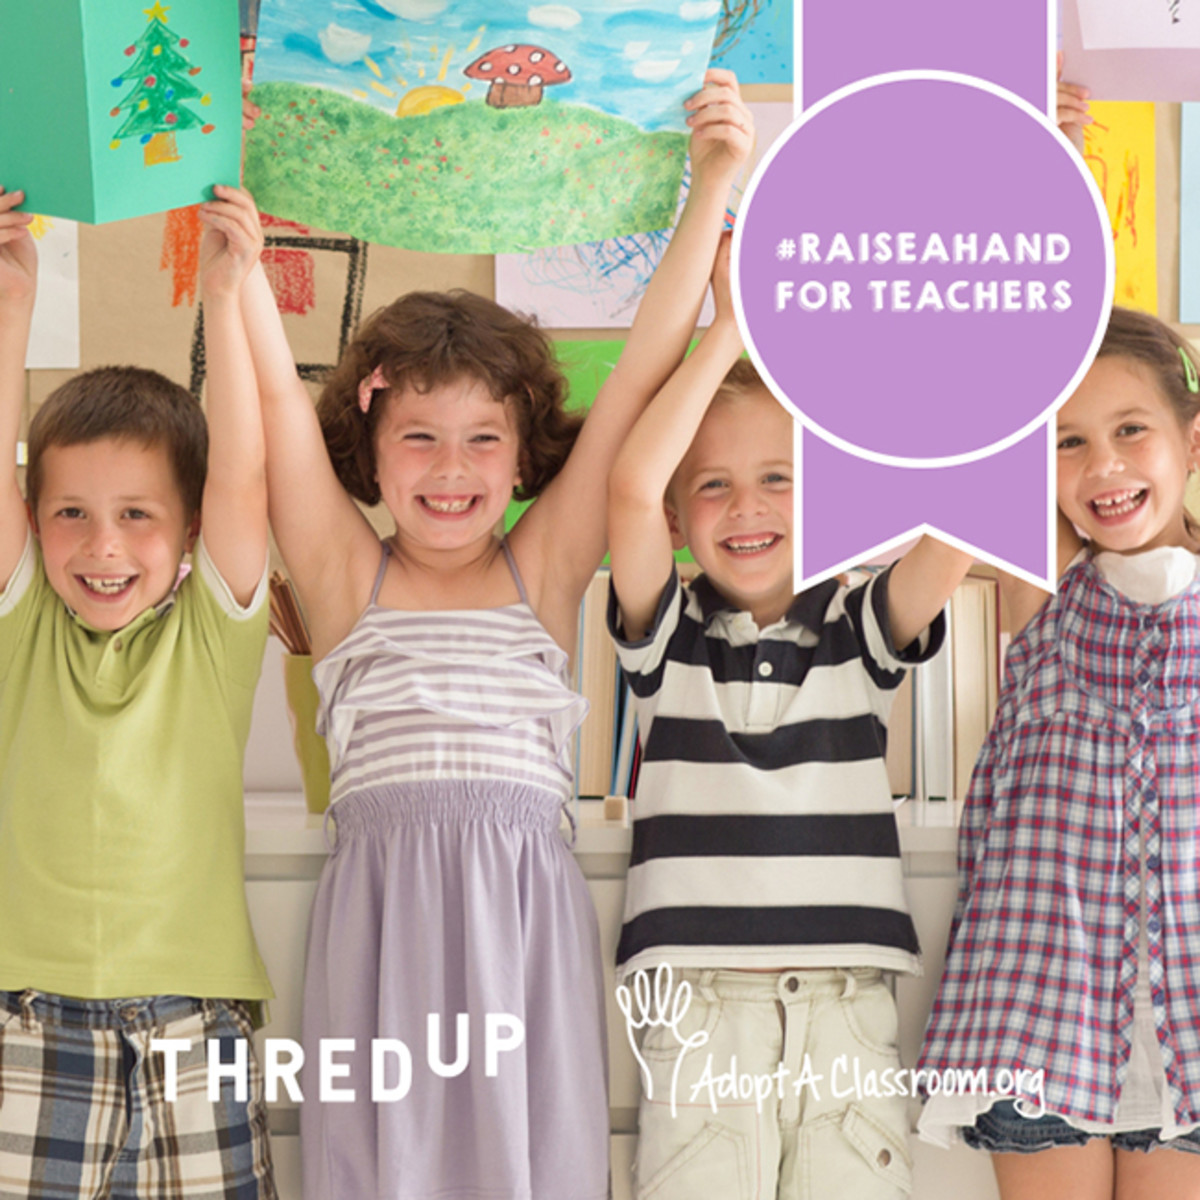 thredup raise a hand for teachers